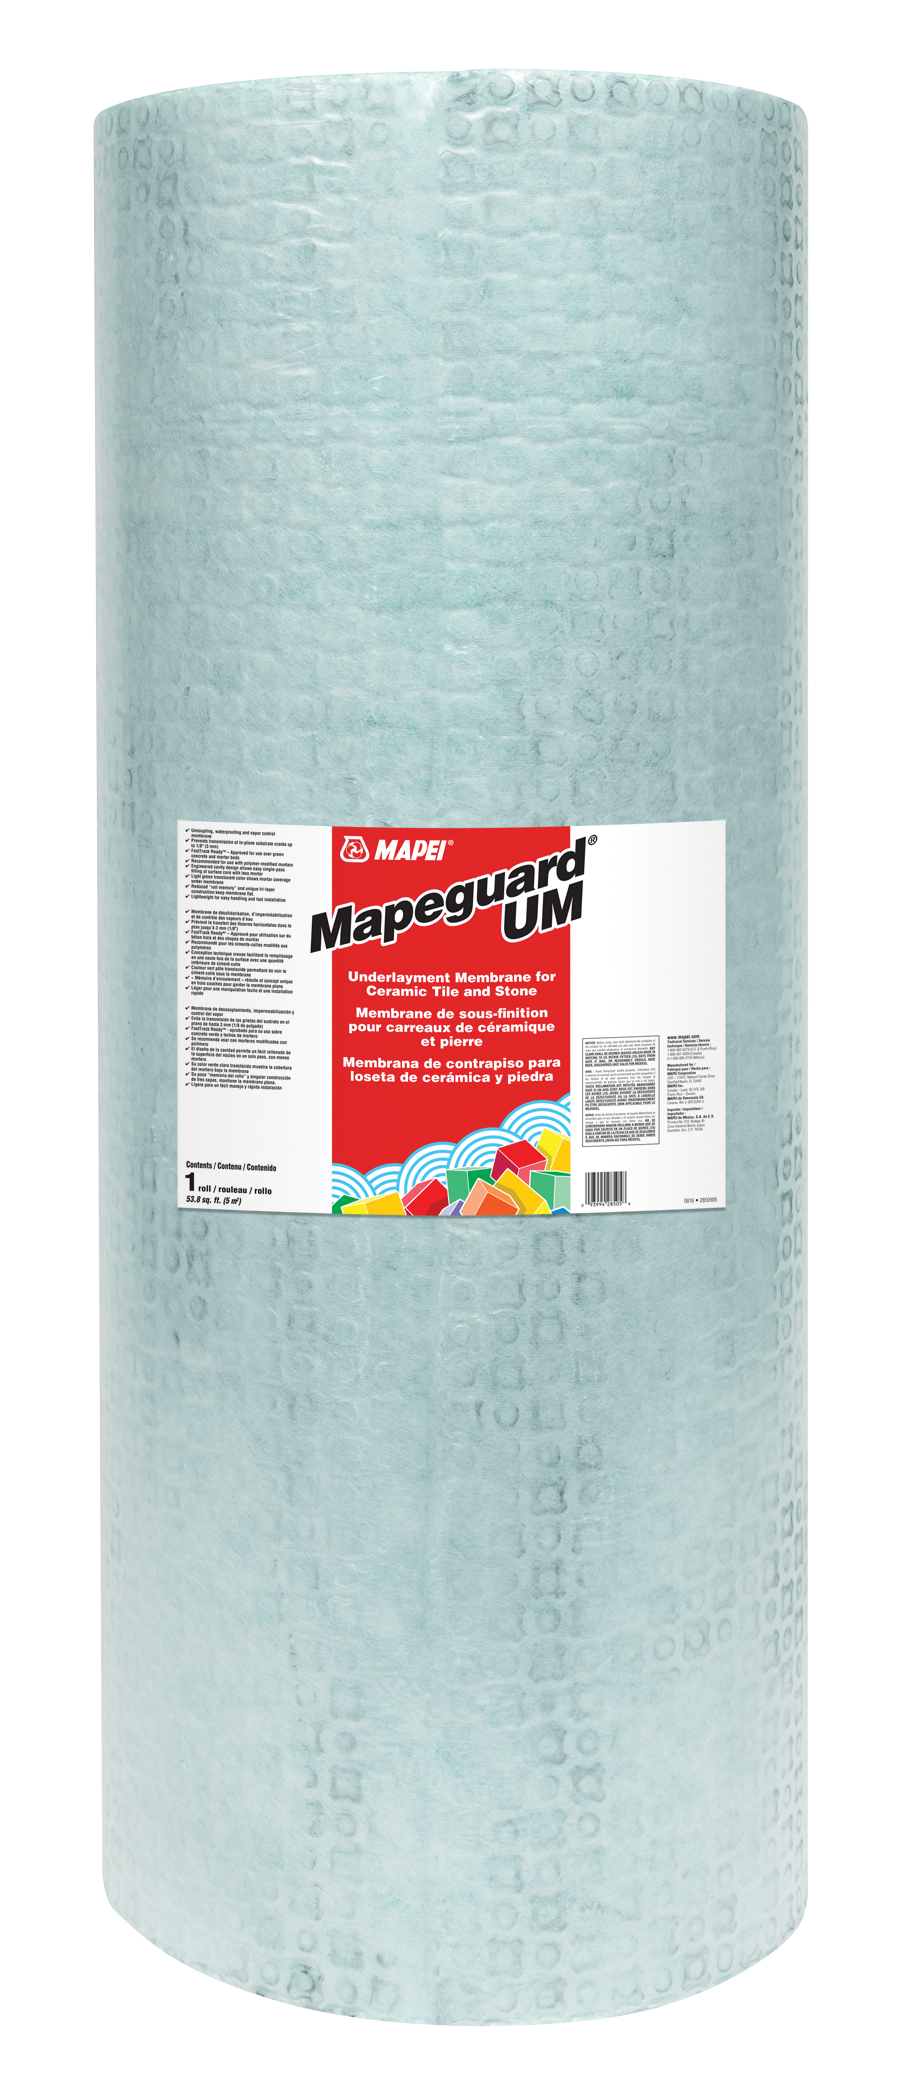 Mapei S New Underlayment Membrane Commercial